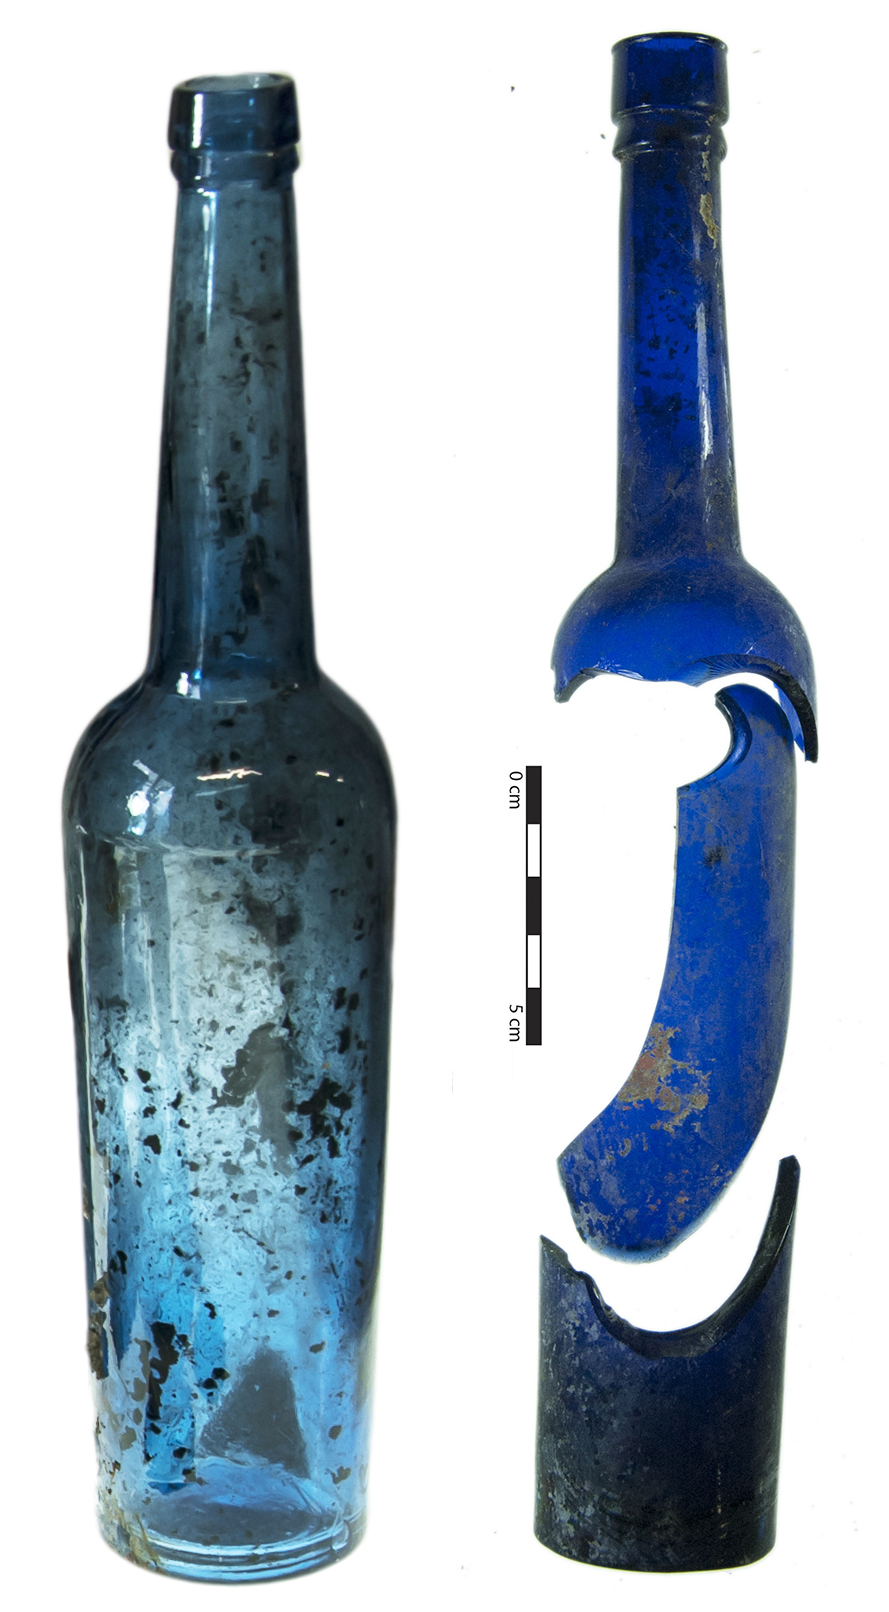 Castor oil bottles, commonly found on 19th century archaeological sites in Christchurch and throughout New Zealand. Image: J. Garland.